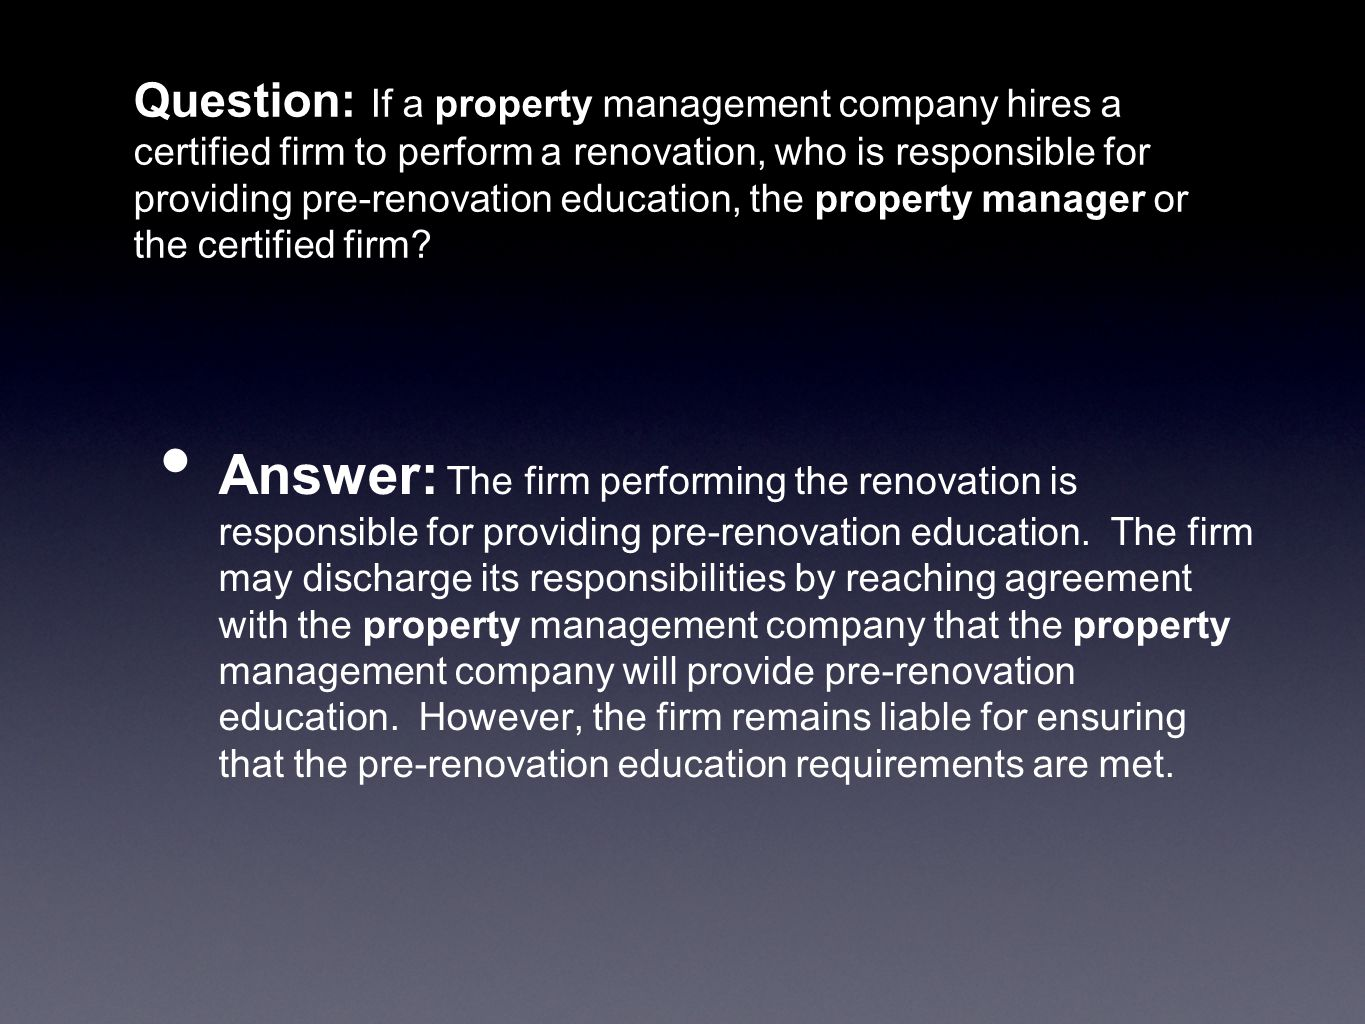 Question: If a property management company hires a certified firm to perform a renovation, who is responsible for providing pre-renovation education, the property manager or the certified firm.